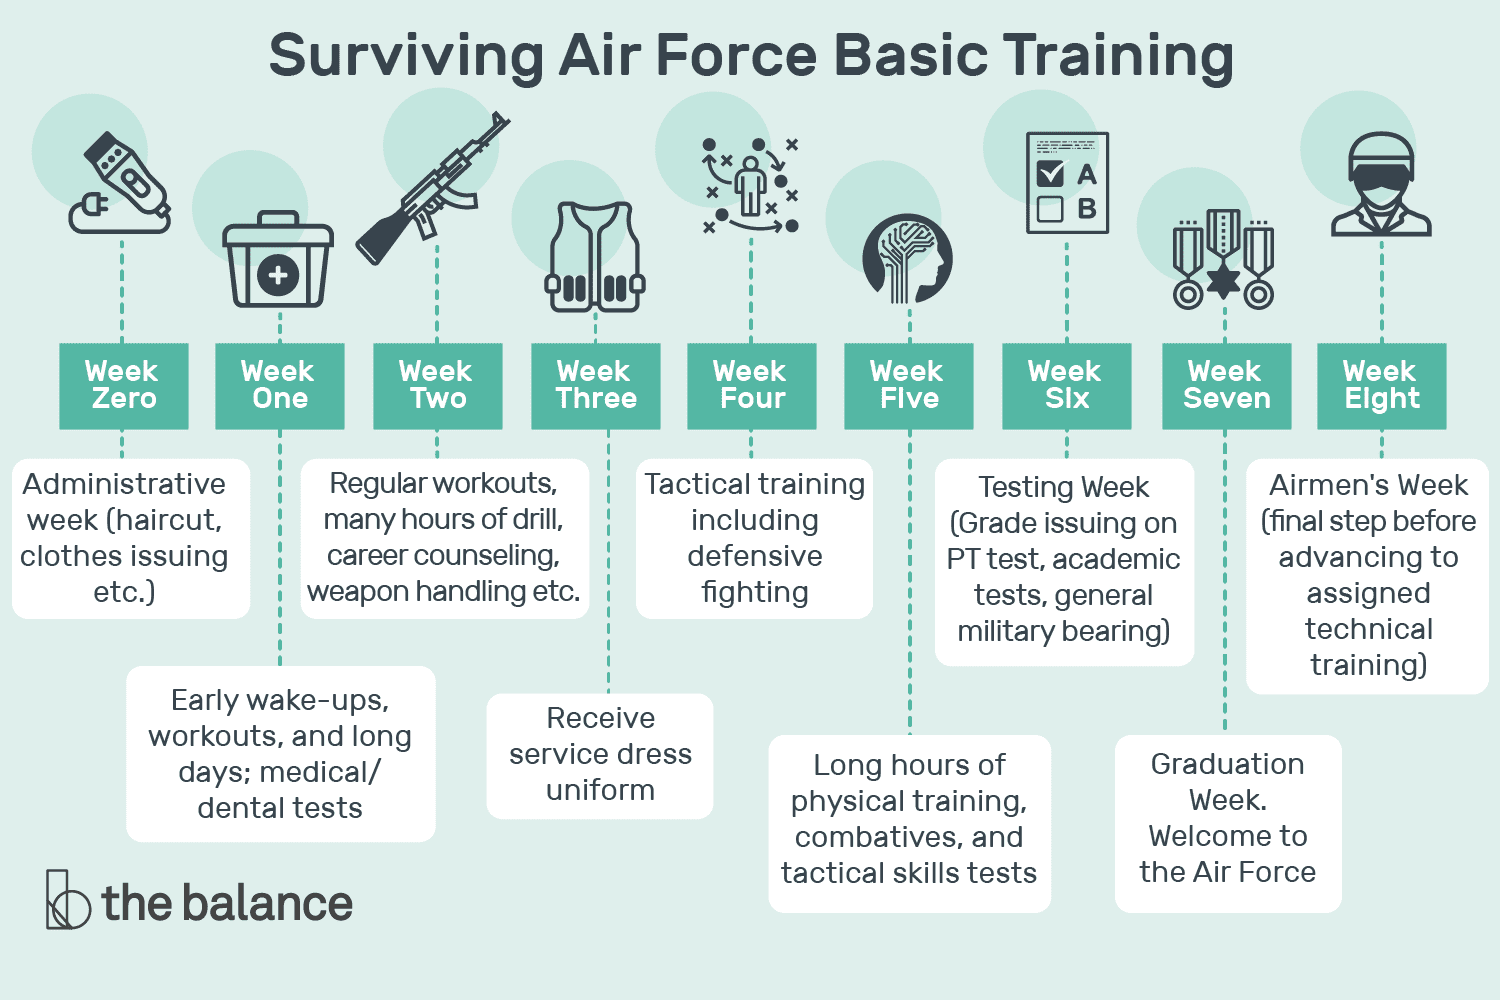 Surviving Air Force Basic Training